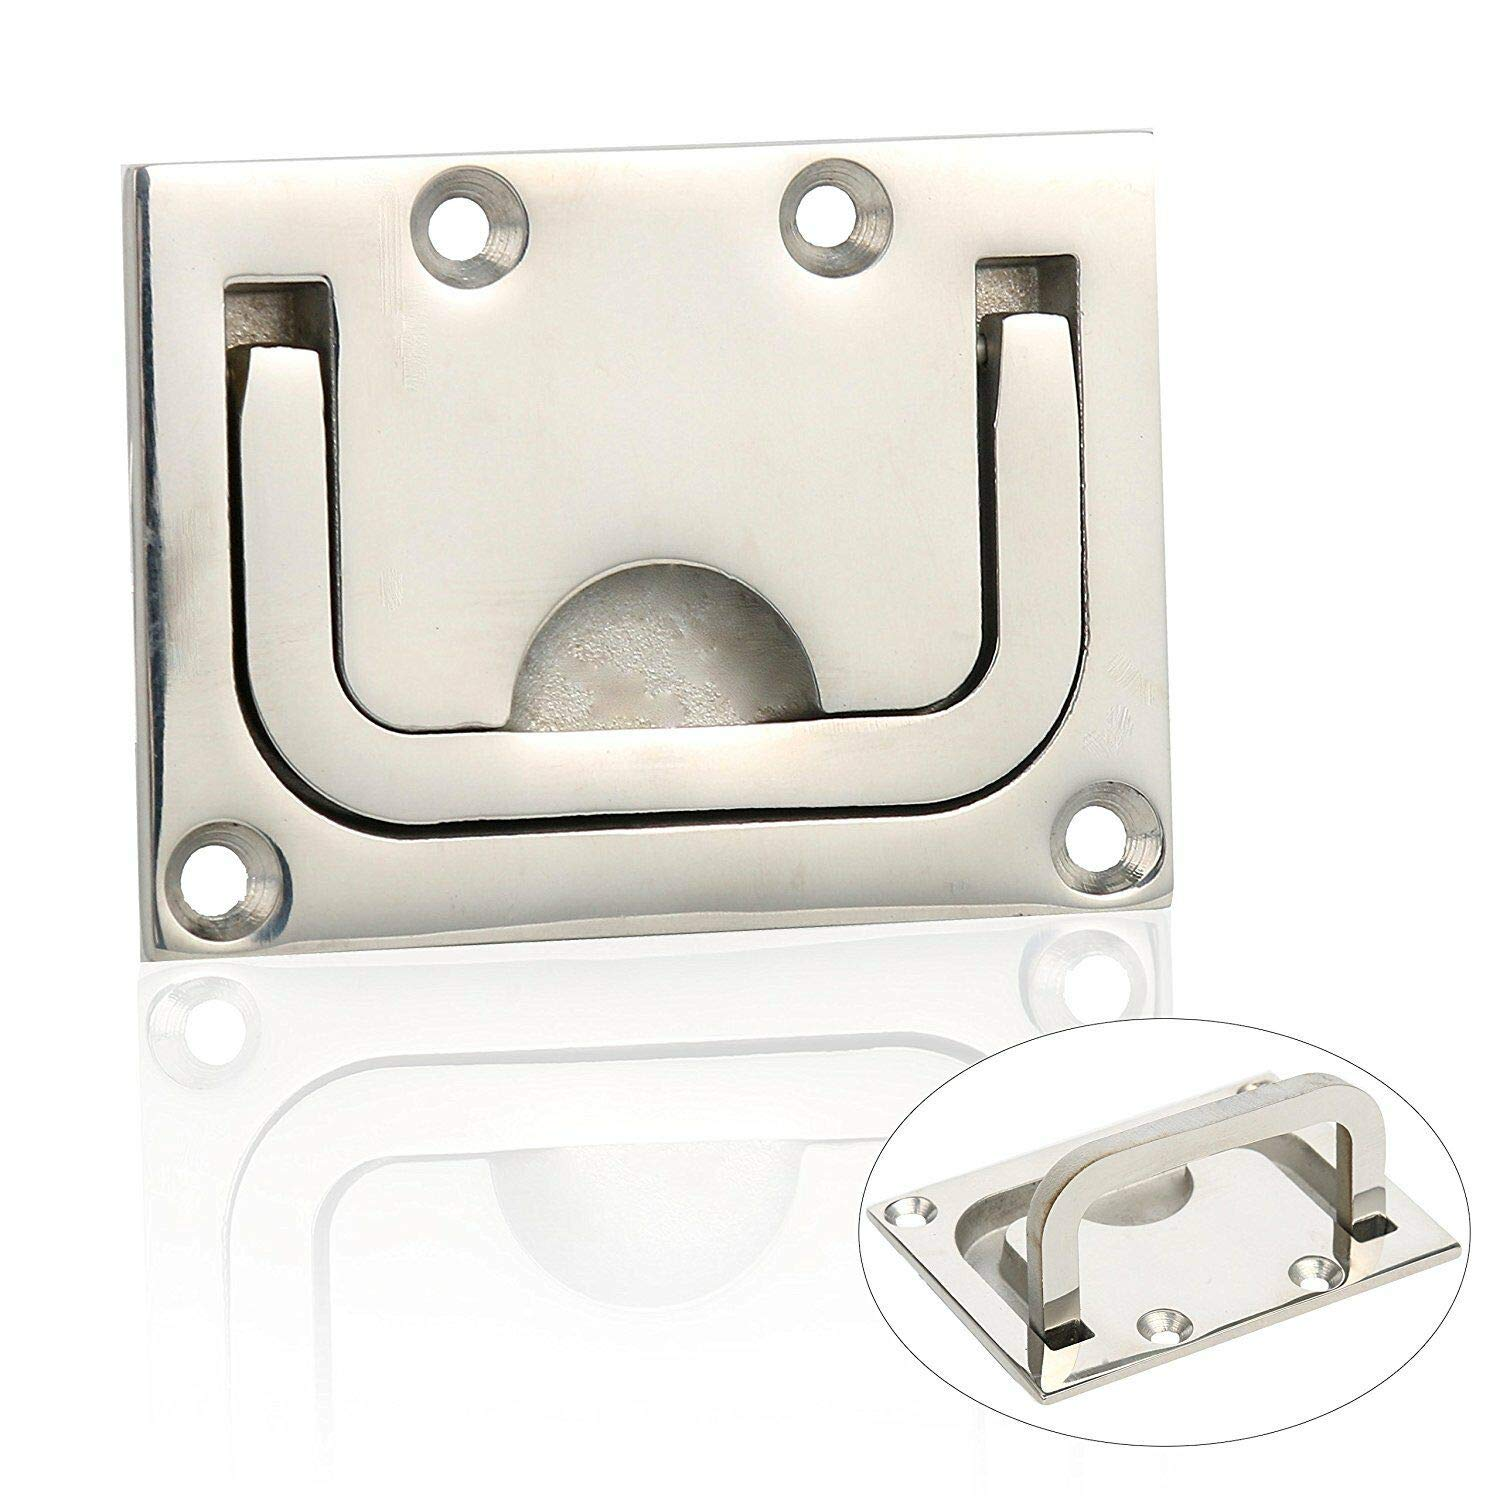 10 Stainless Steel Flush Mount Pull Ring Hatch Latch Lift Handle Marine Boat